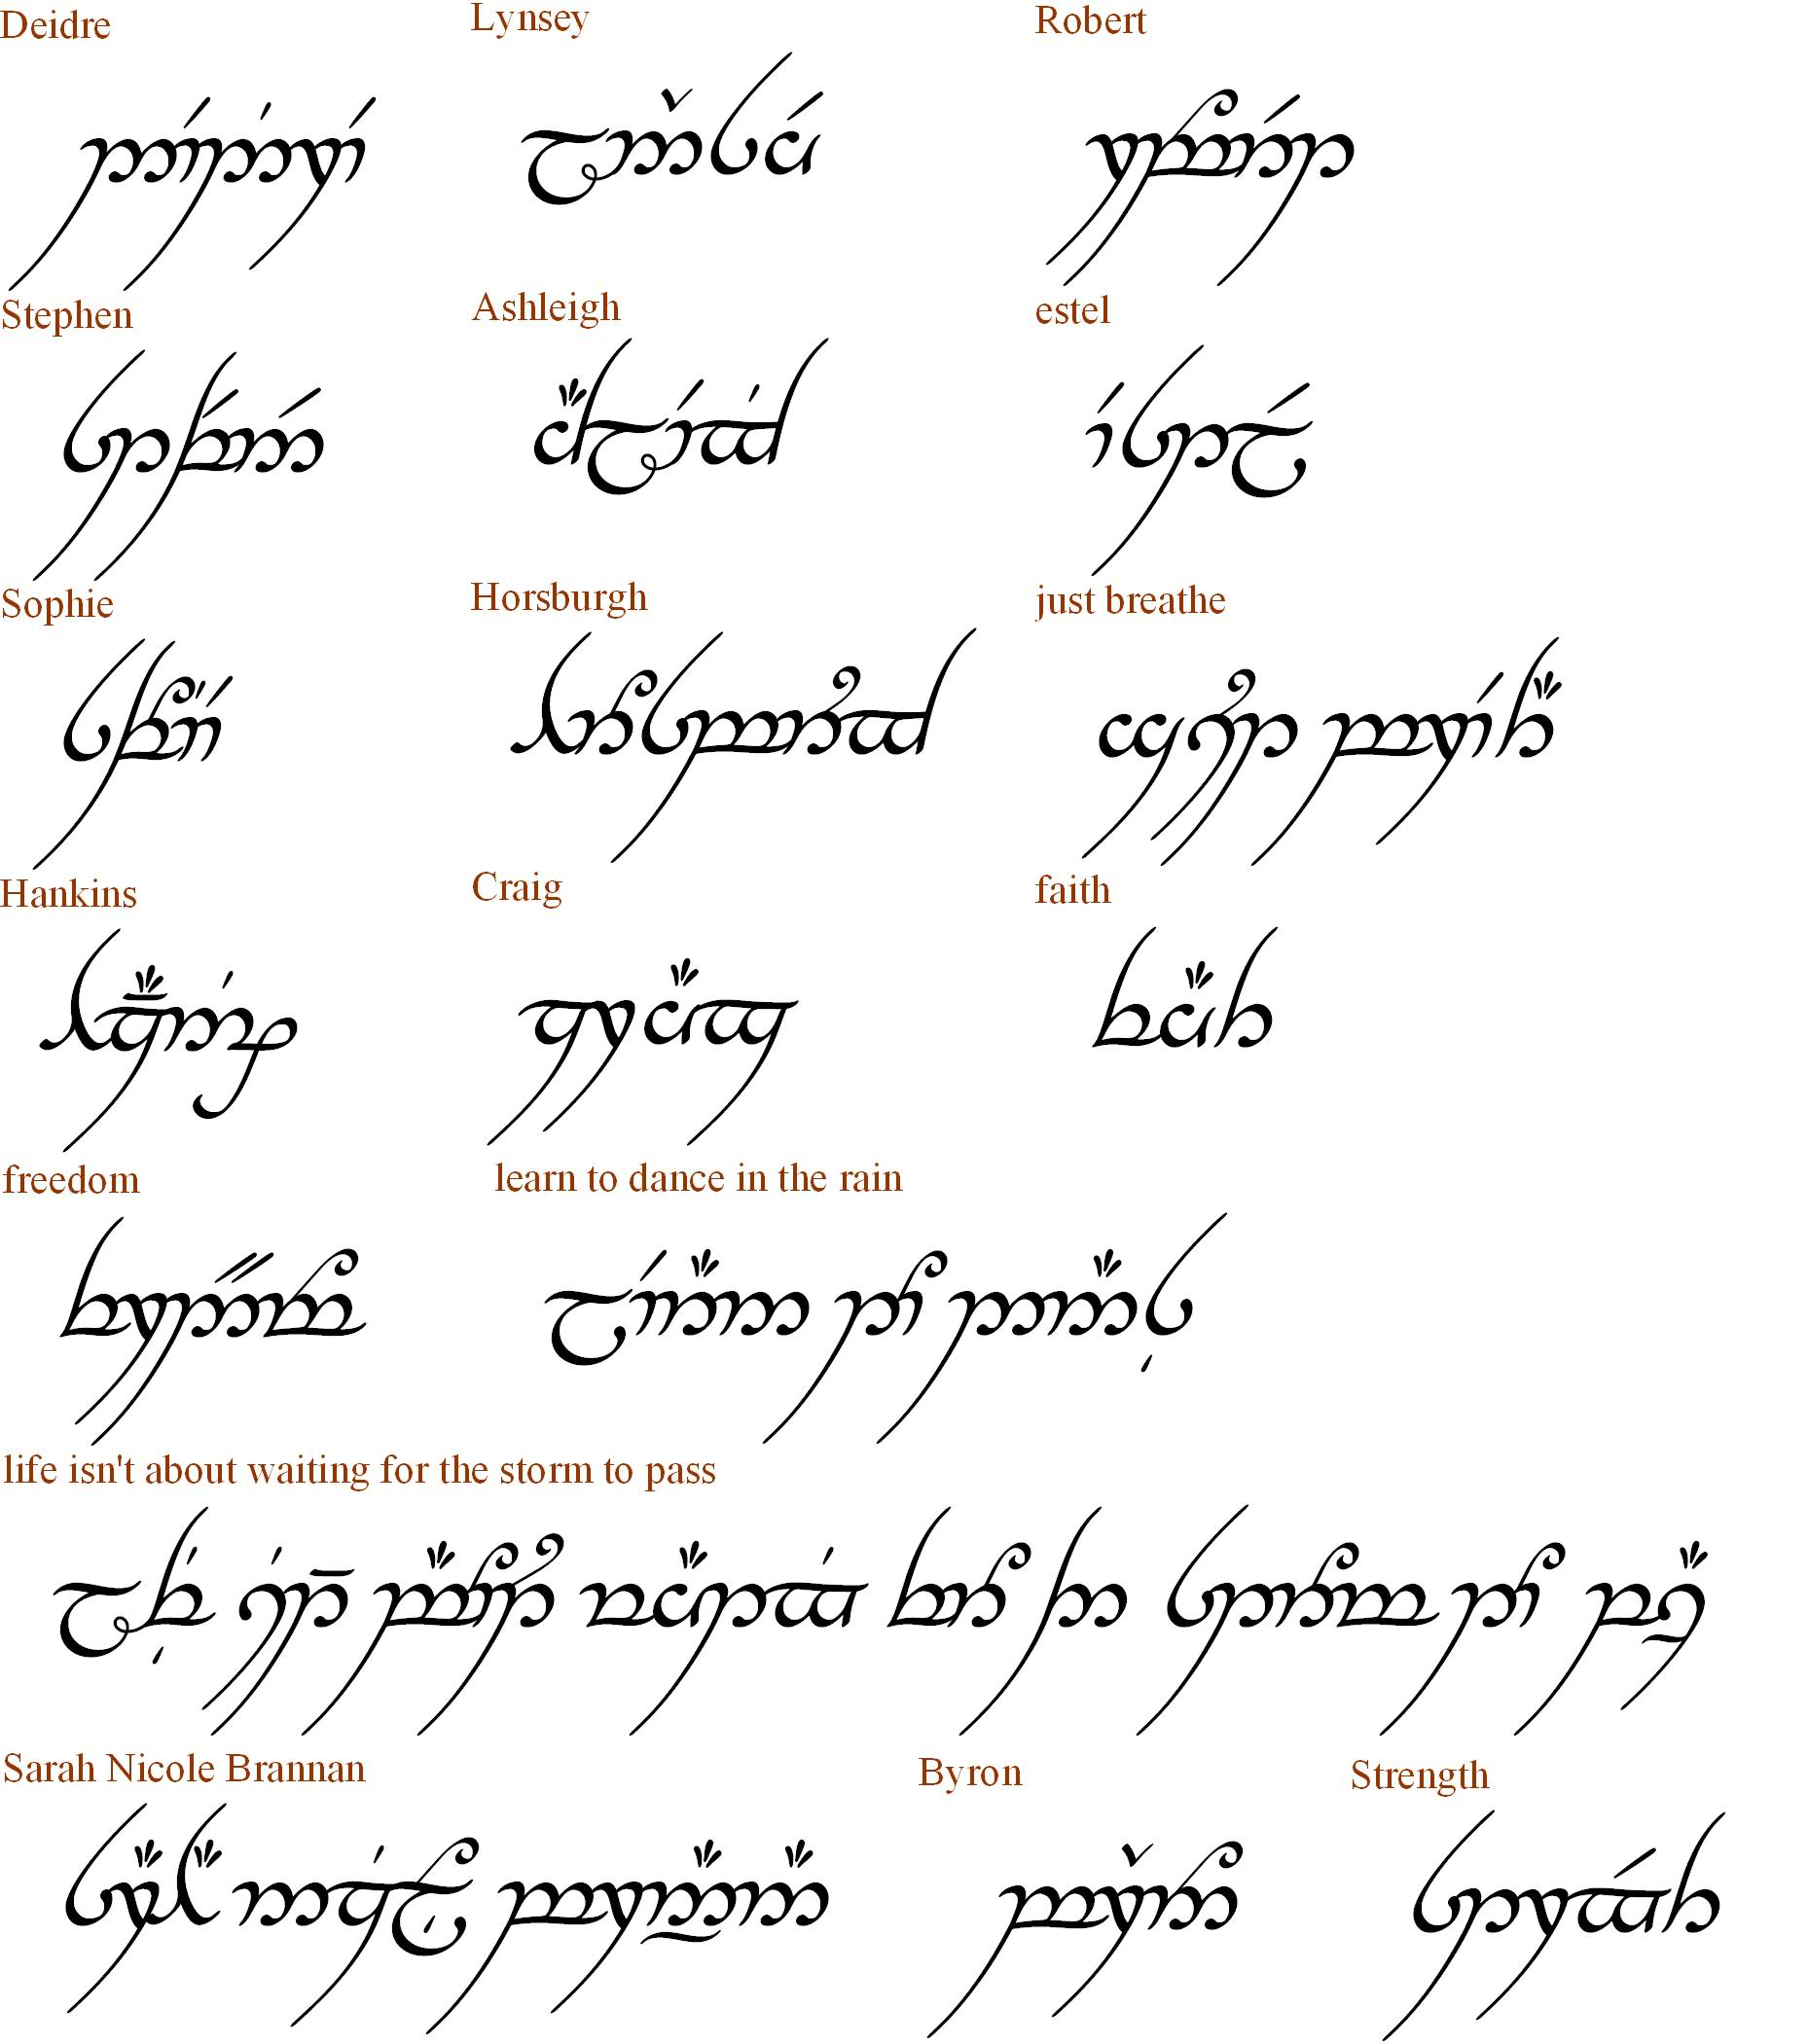 Inspirational Quotes In Lotr Elvish. QuotesGram